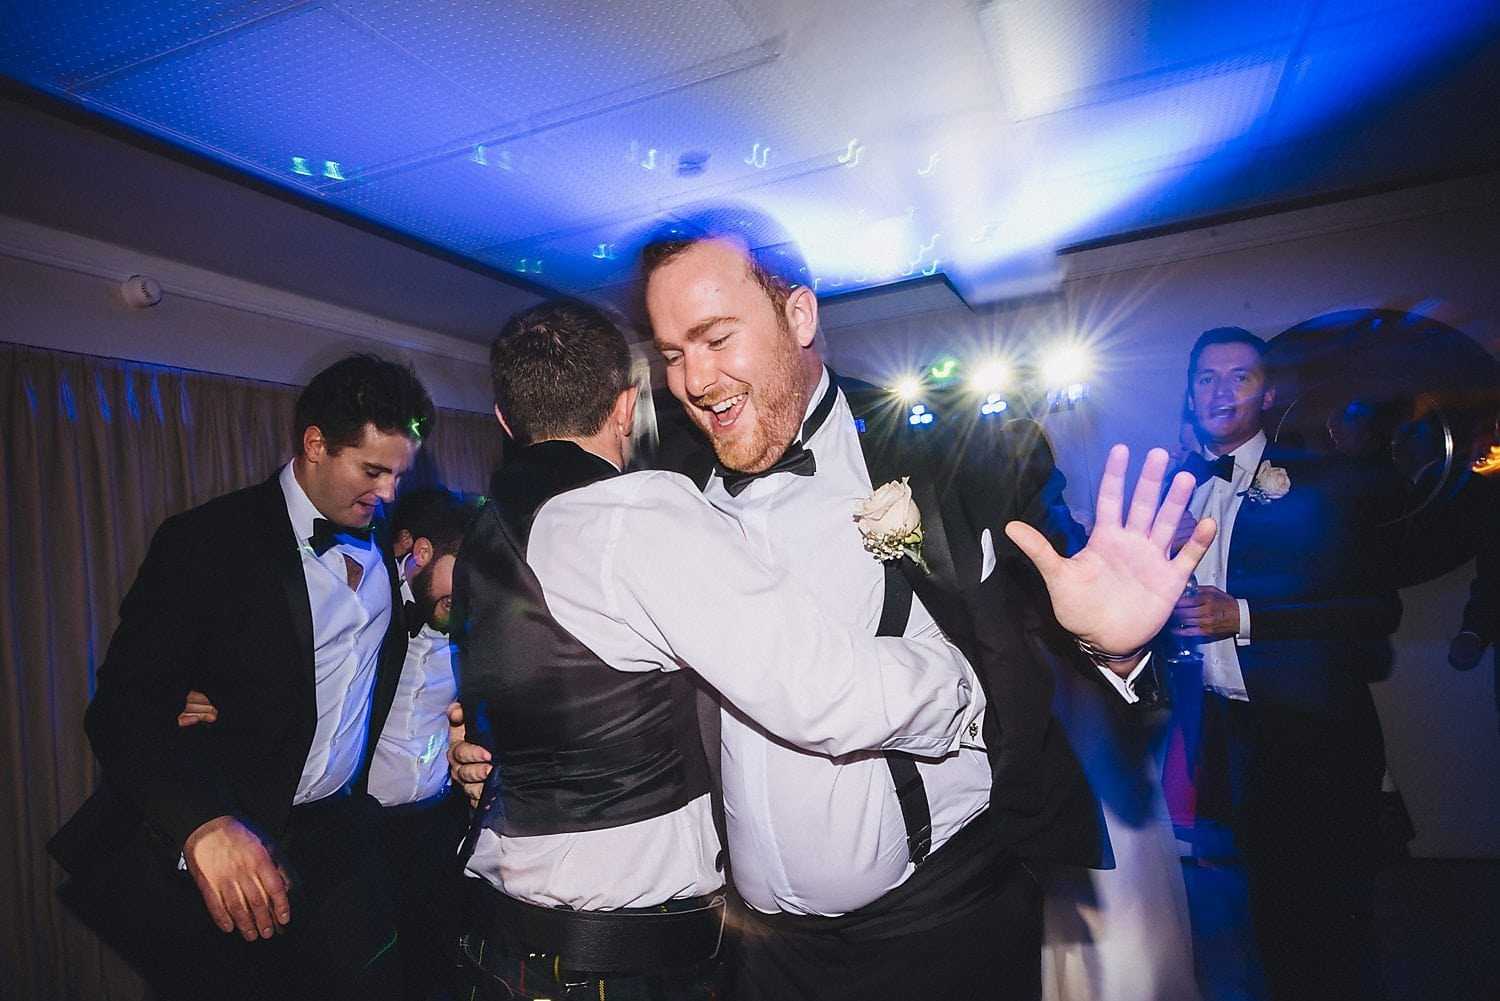 Male guests show off their moves on the dancefloor